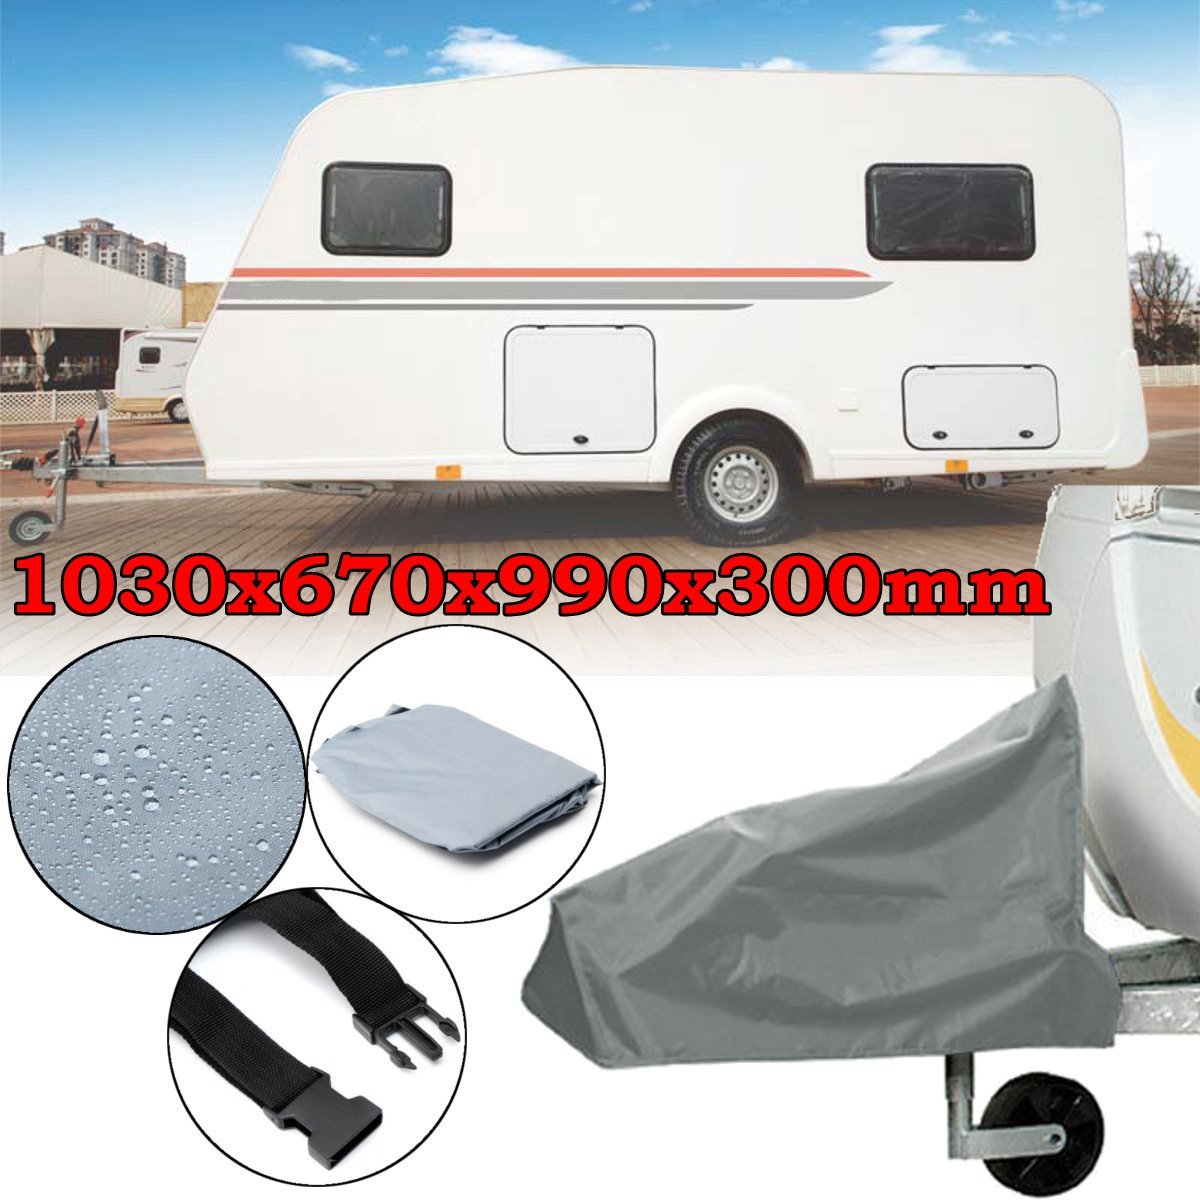 Nylon Universal Caravan Hitch Cover Waterproof Dustproof Trailer Tow Ball Coupling Lock Cover For RV